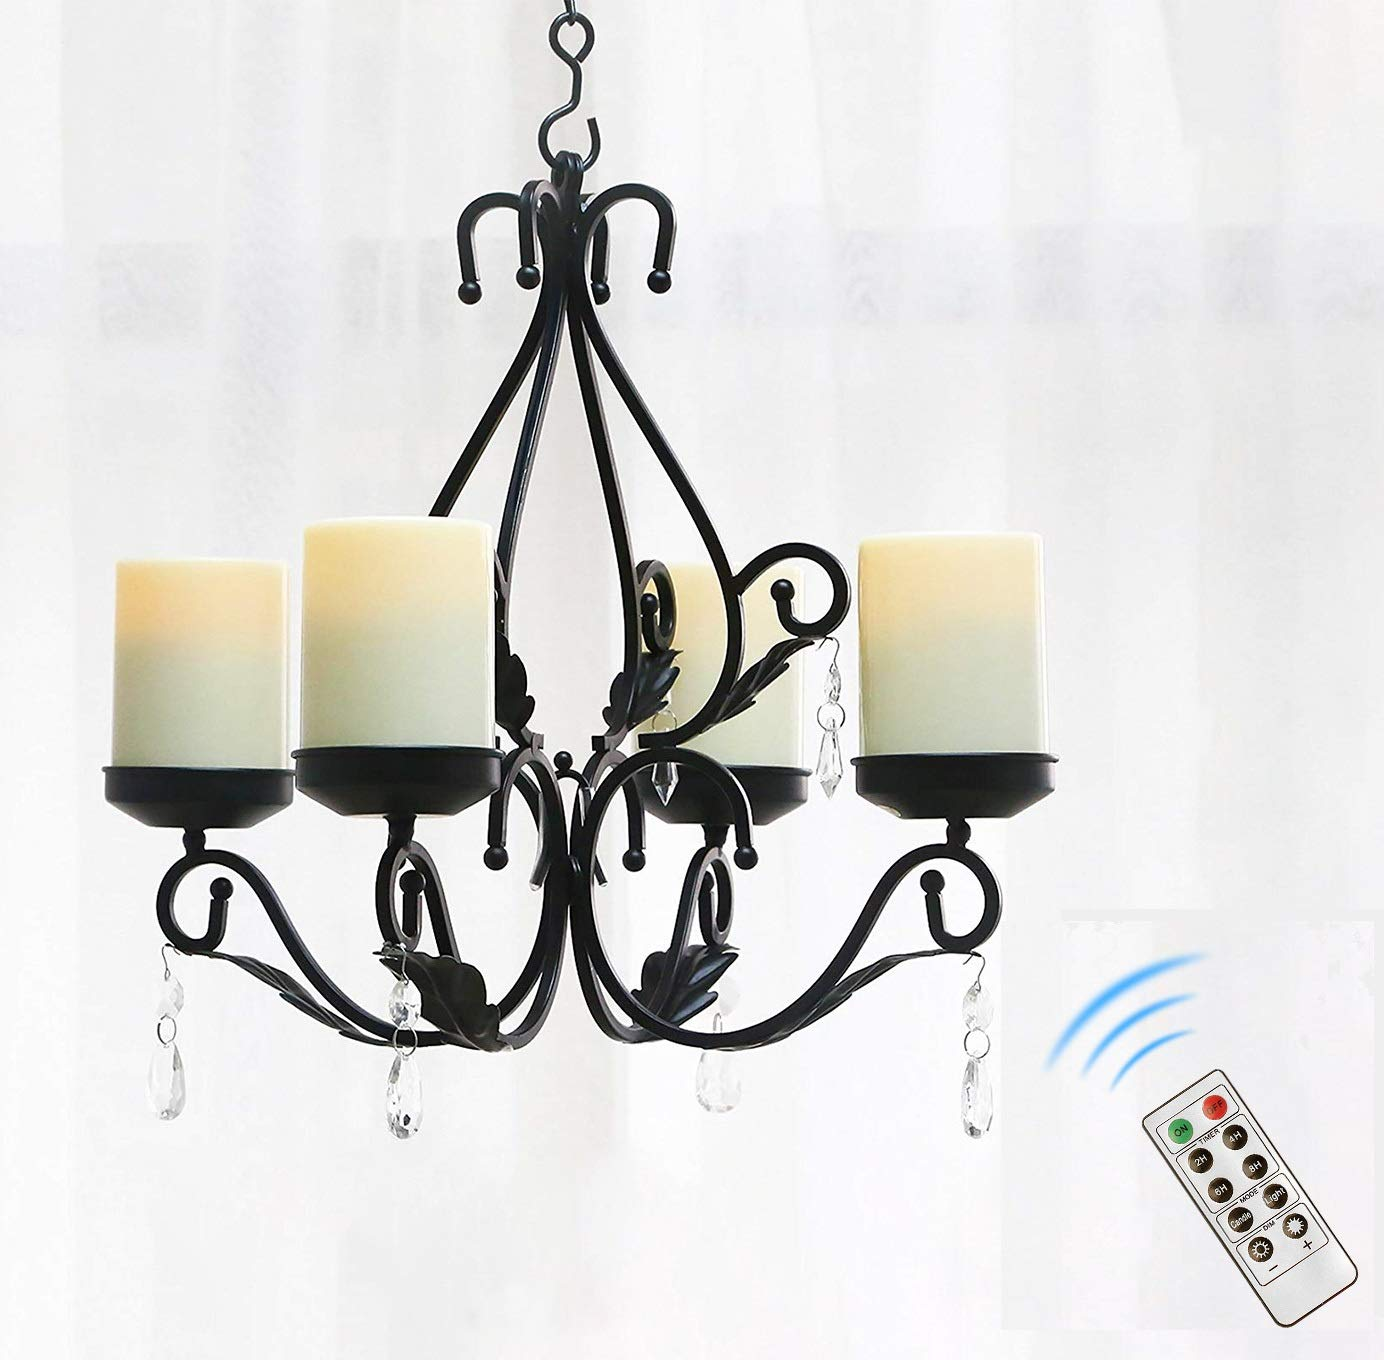 GiveU 3 in 1 Lighting Chandelier Chain Hang Metal Wall Sconce With 4pcs Battery Operated Led Candle With Remote, Table Centerpiece for Indoor or Outdoor Gazebo,Patio Decoration, Black by GiveU